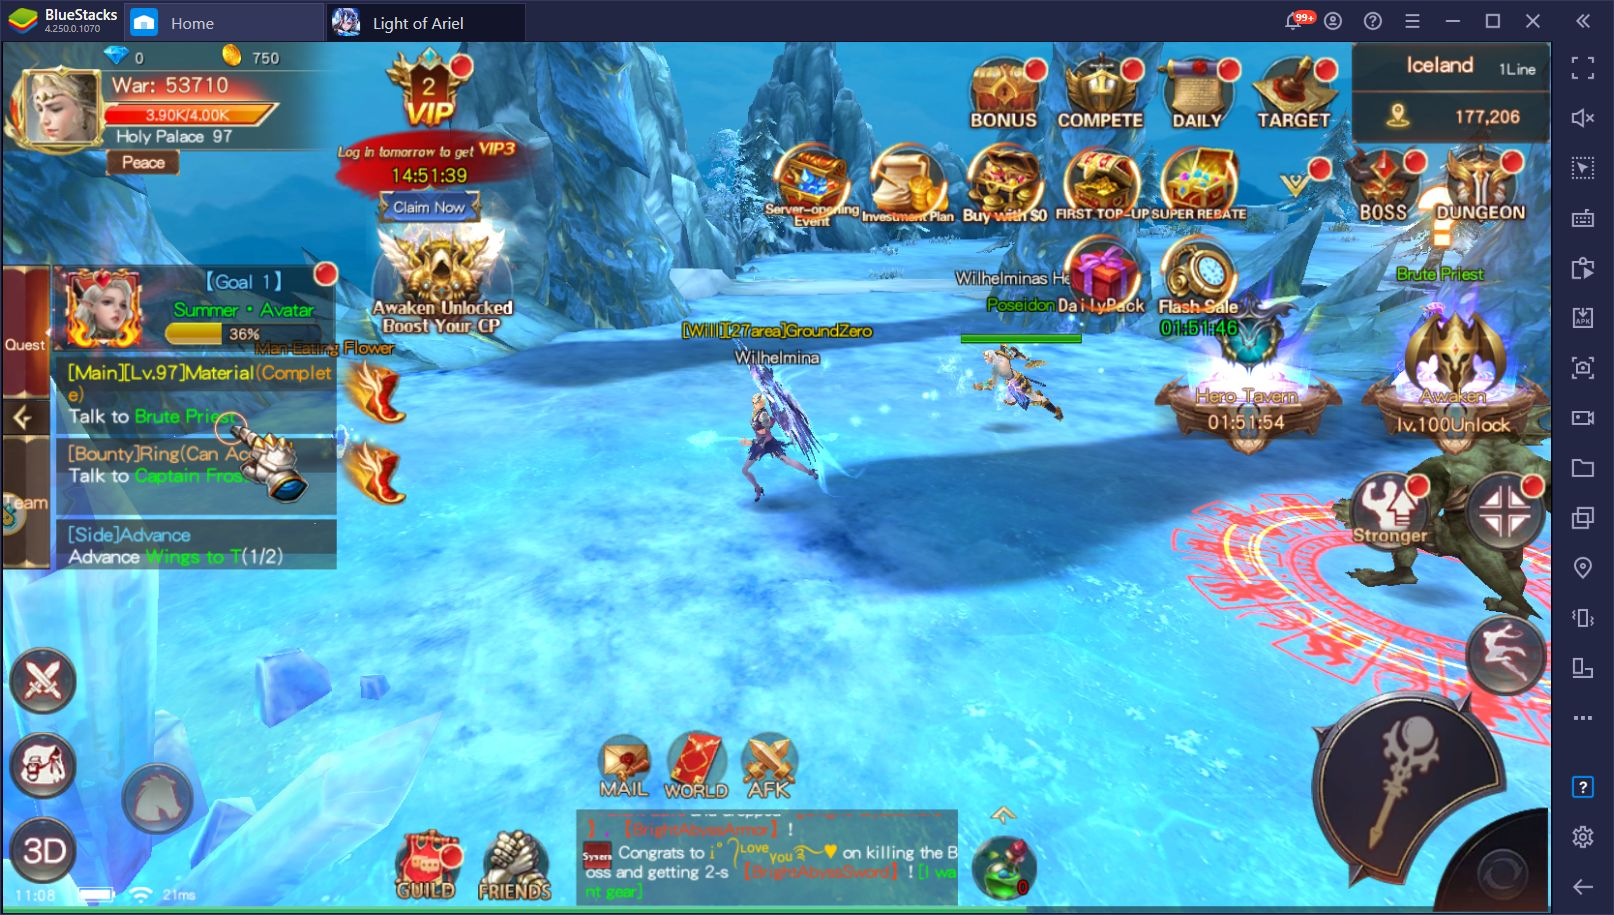 Light of Ariel on PC – How to Use BlueStacks Tools to Win in this Mobile MMORPG